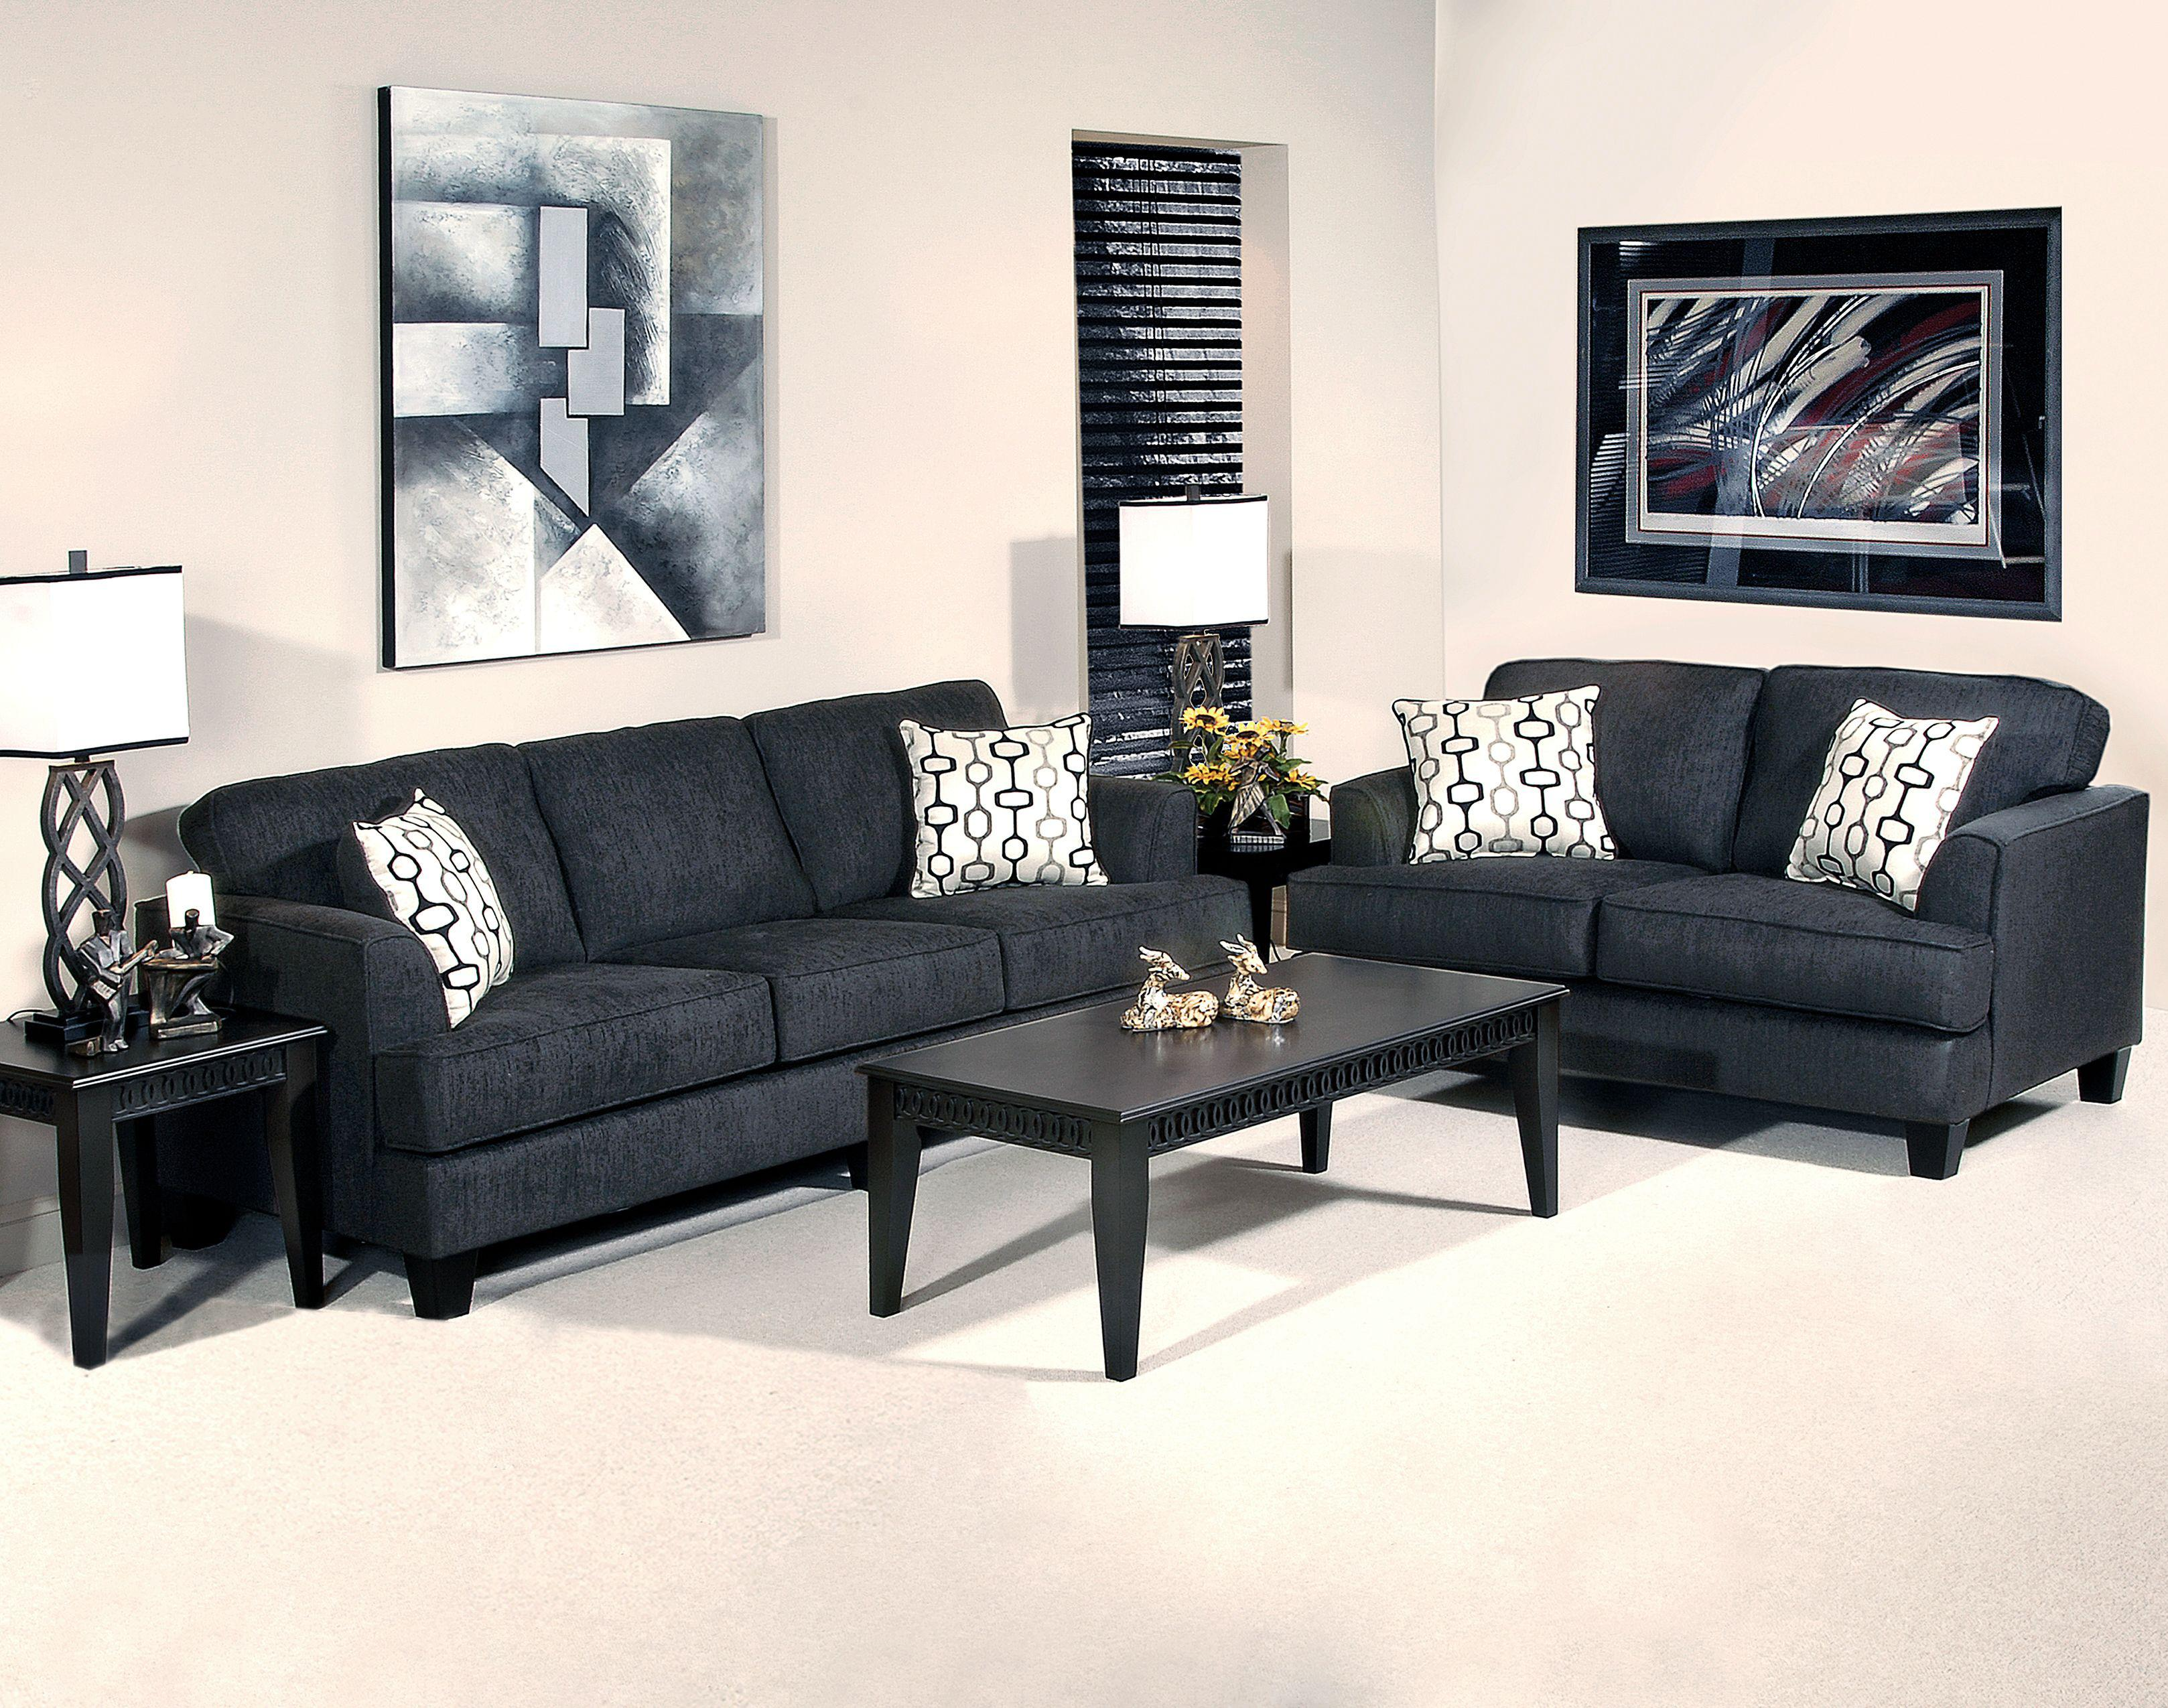 Serta Upholstery by Hughes Furniture 5600 Stationary Living Room Group - Item Number: 5600 Living Room Group 1